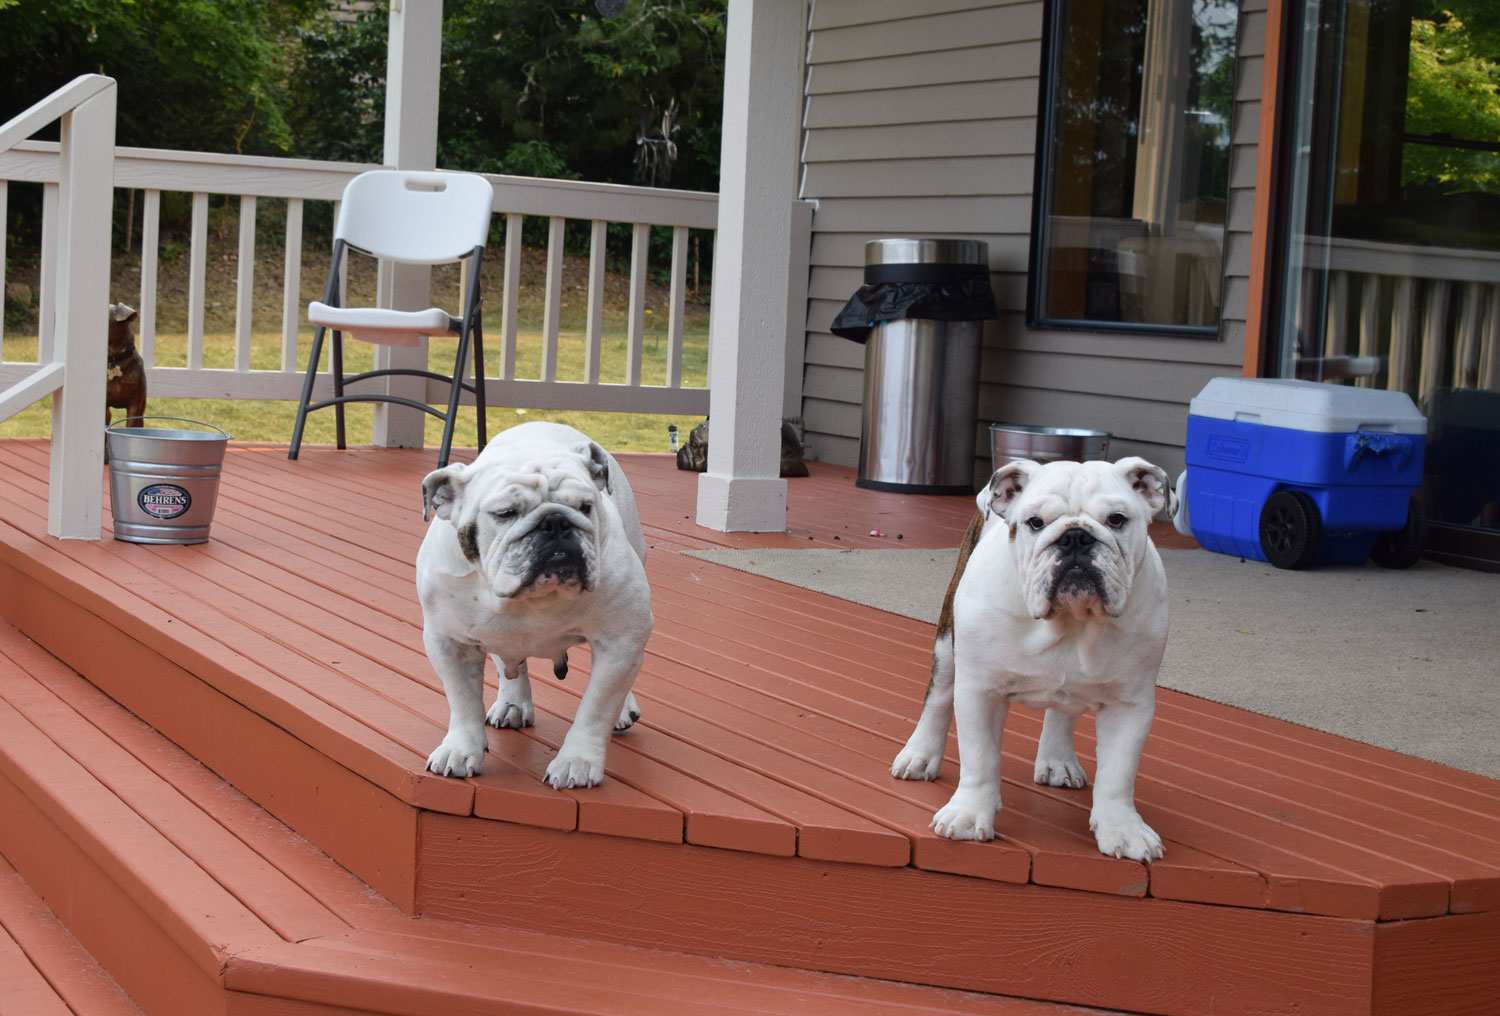 bulldogs standing on a patio